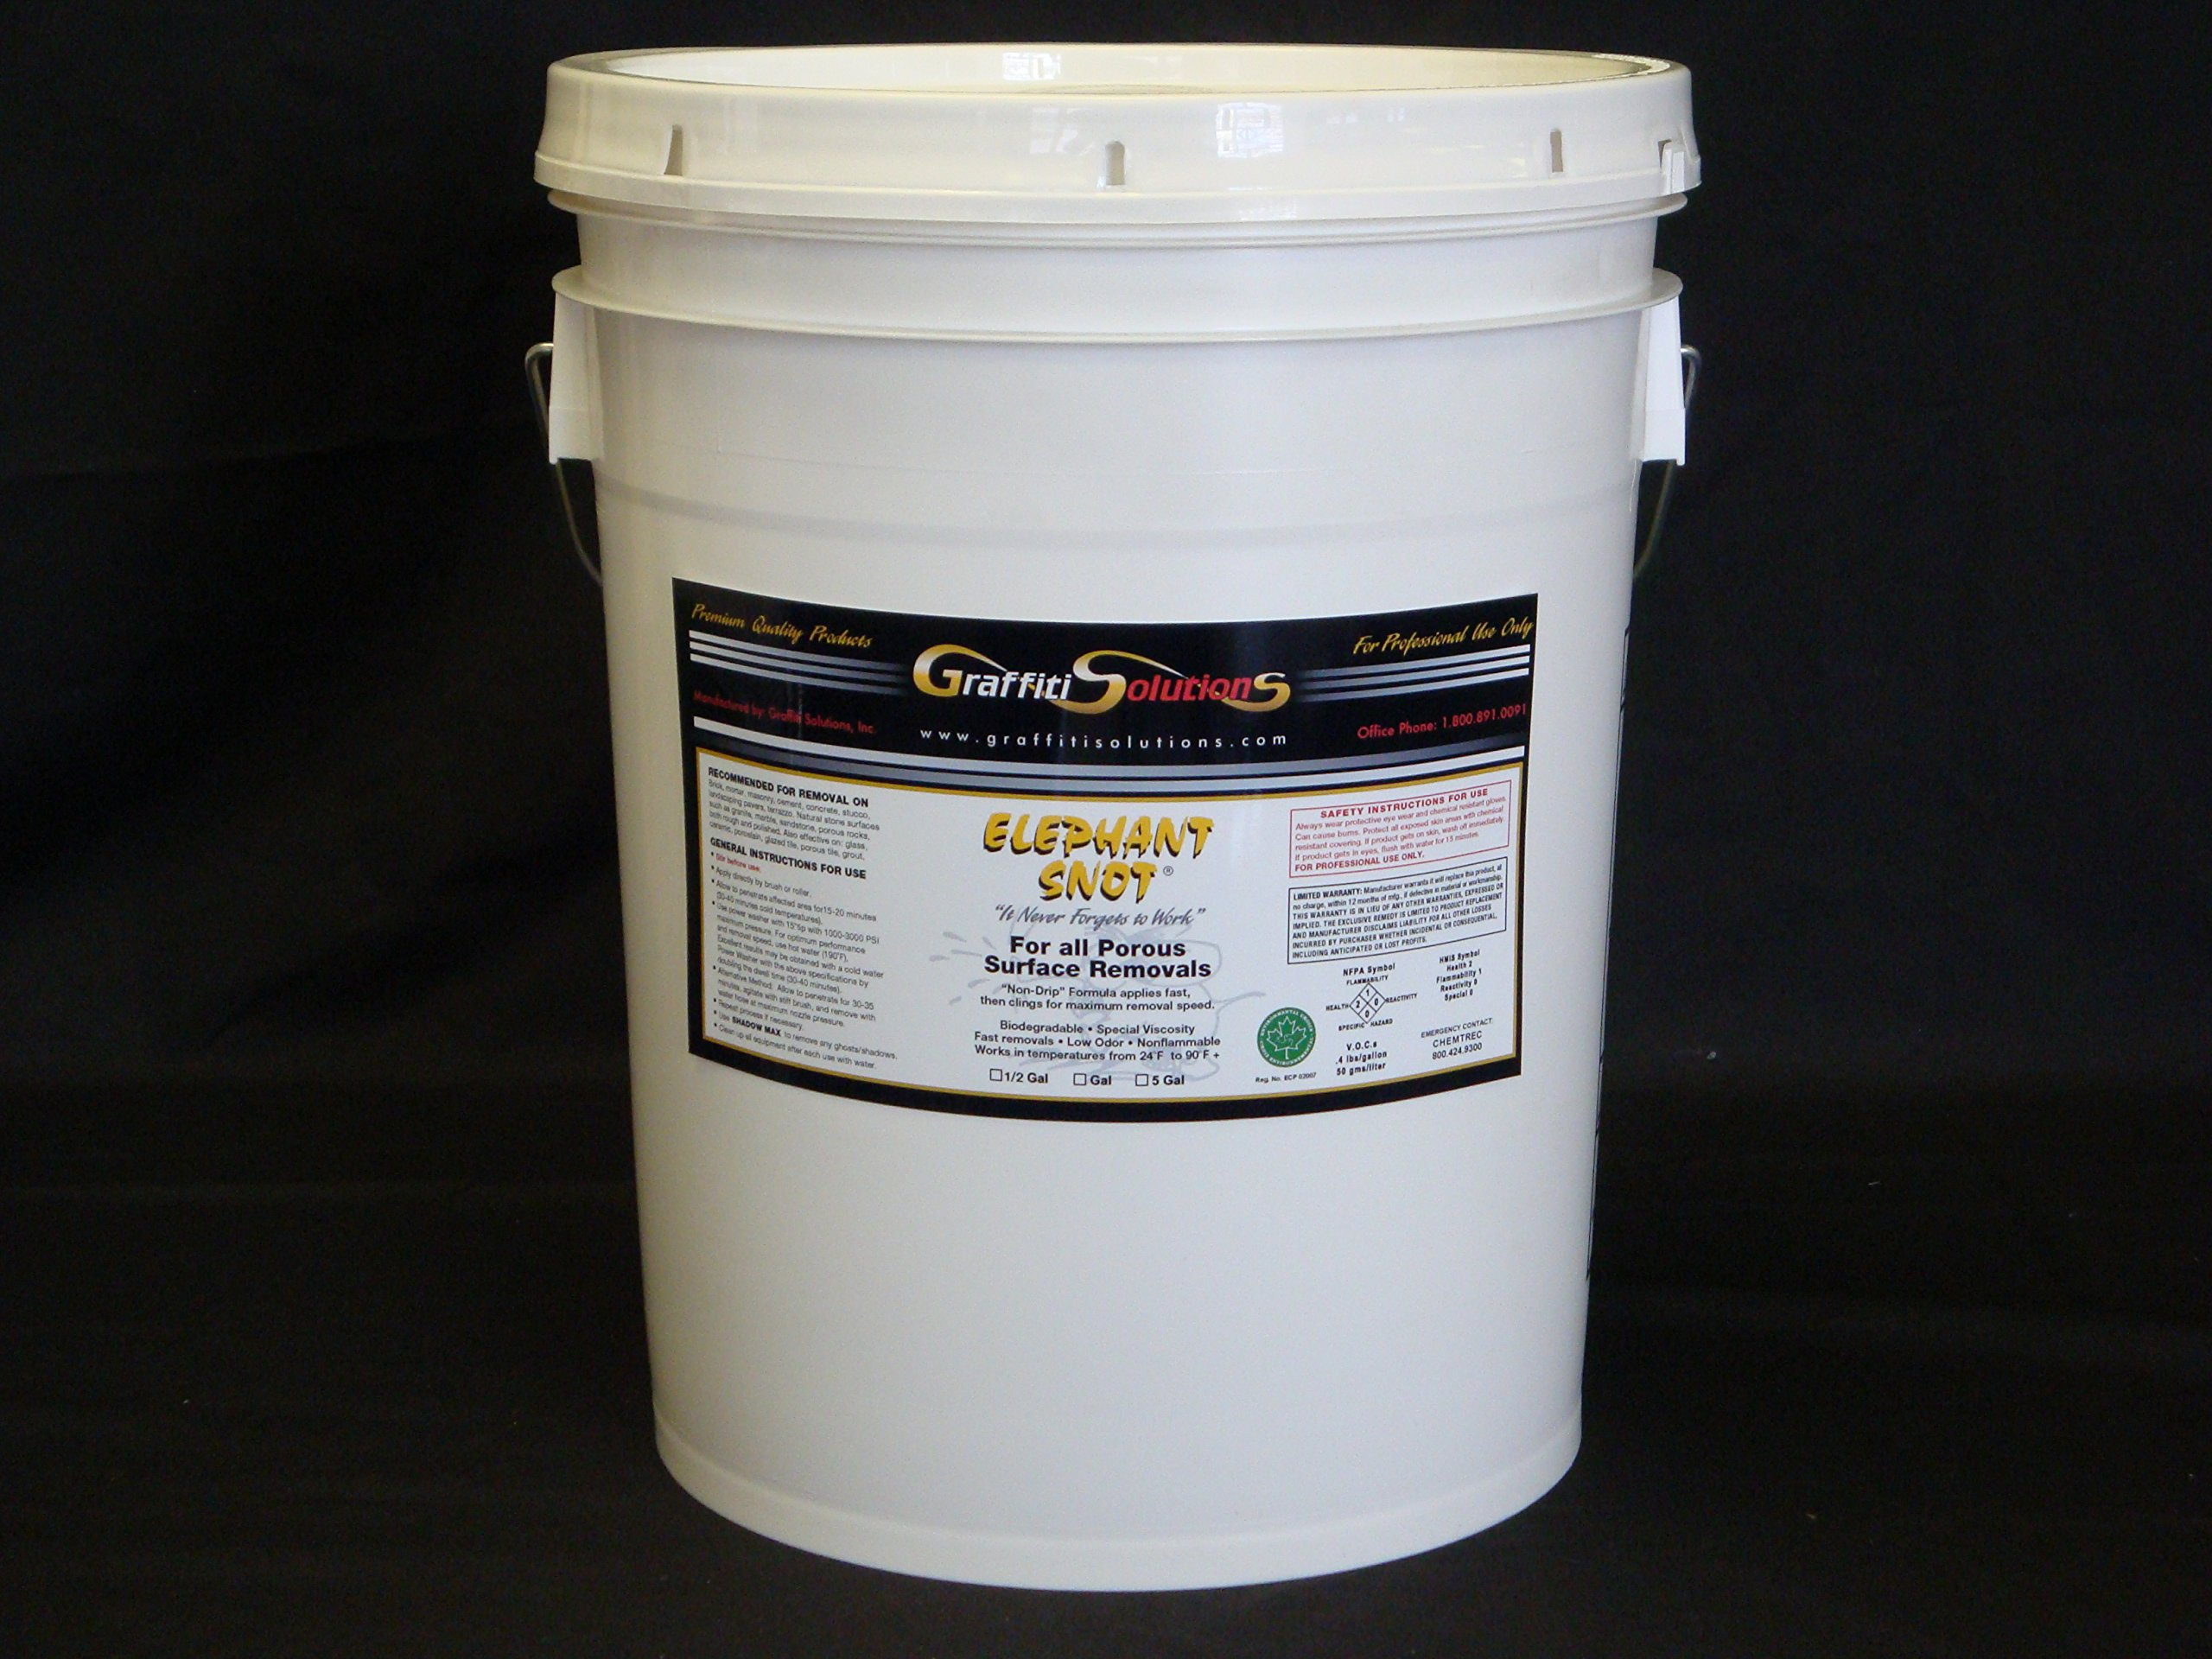 Elephant Snot Graffiti Remover 5 Gal Used By Professionals on Porous Surfaces for Exceptional Graffiti Removal of spray paint, marking pens, difficult to remove 2-part paint, epoxy, urethane and more